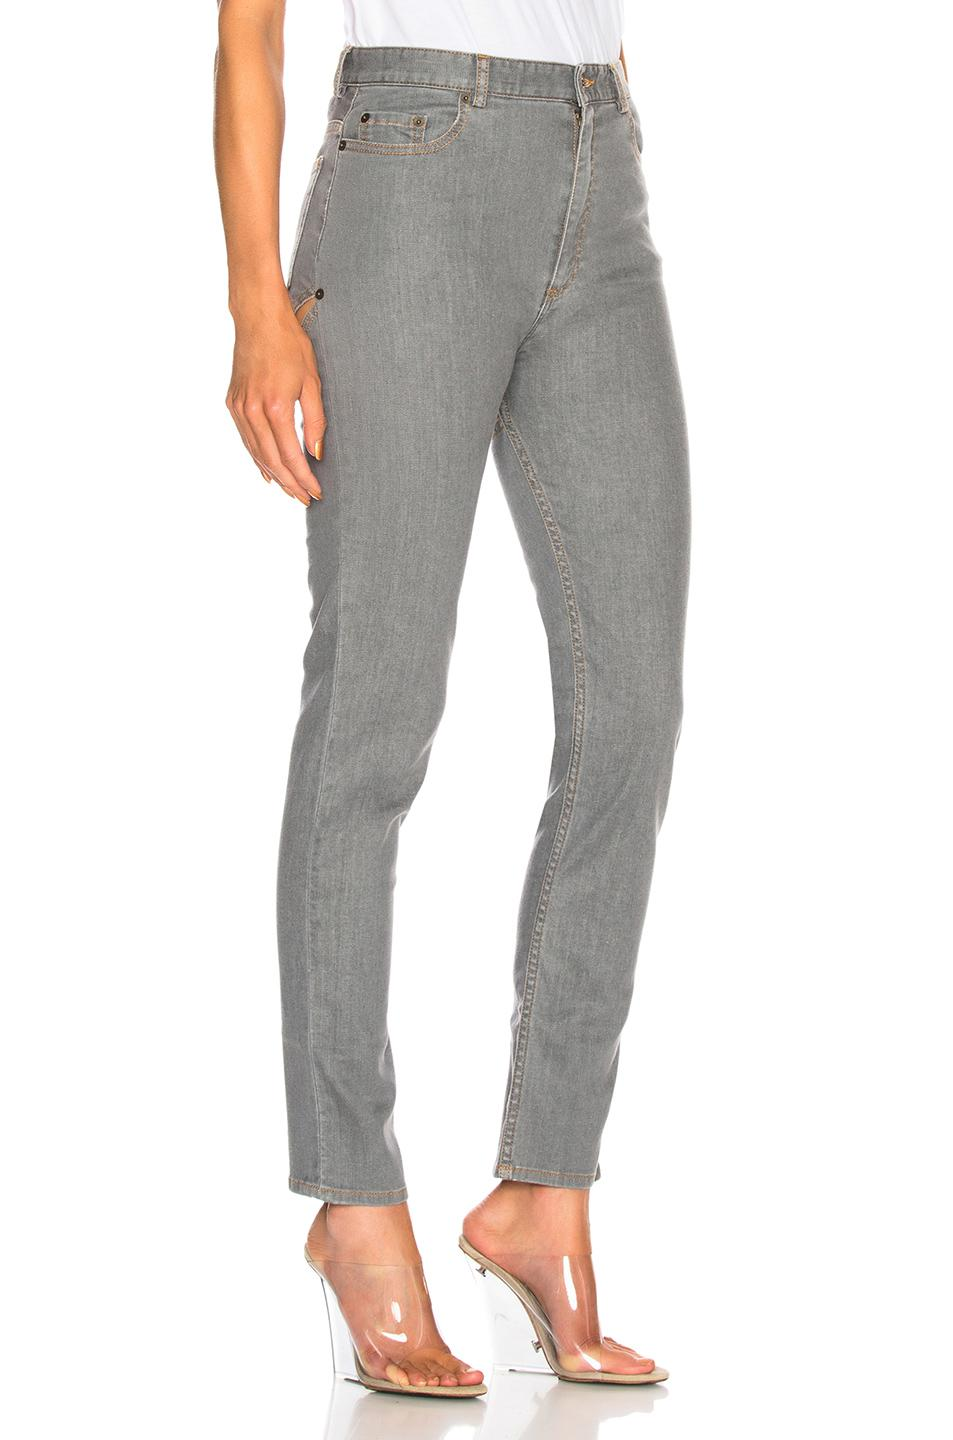 Back Cut Skinny in Grey Y / Project fhASSX